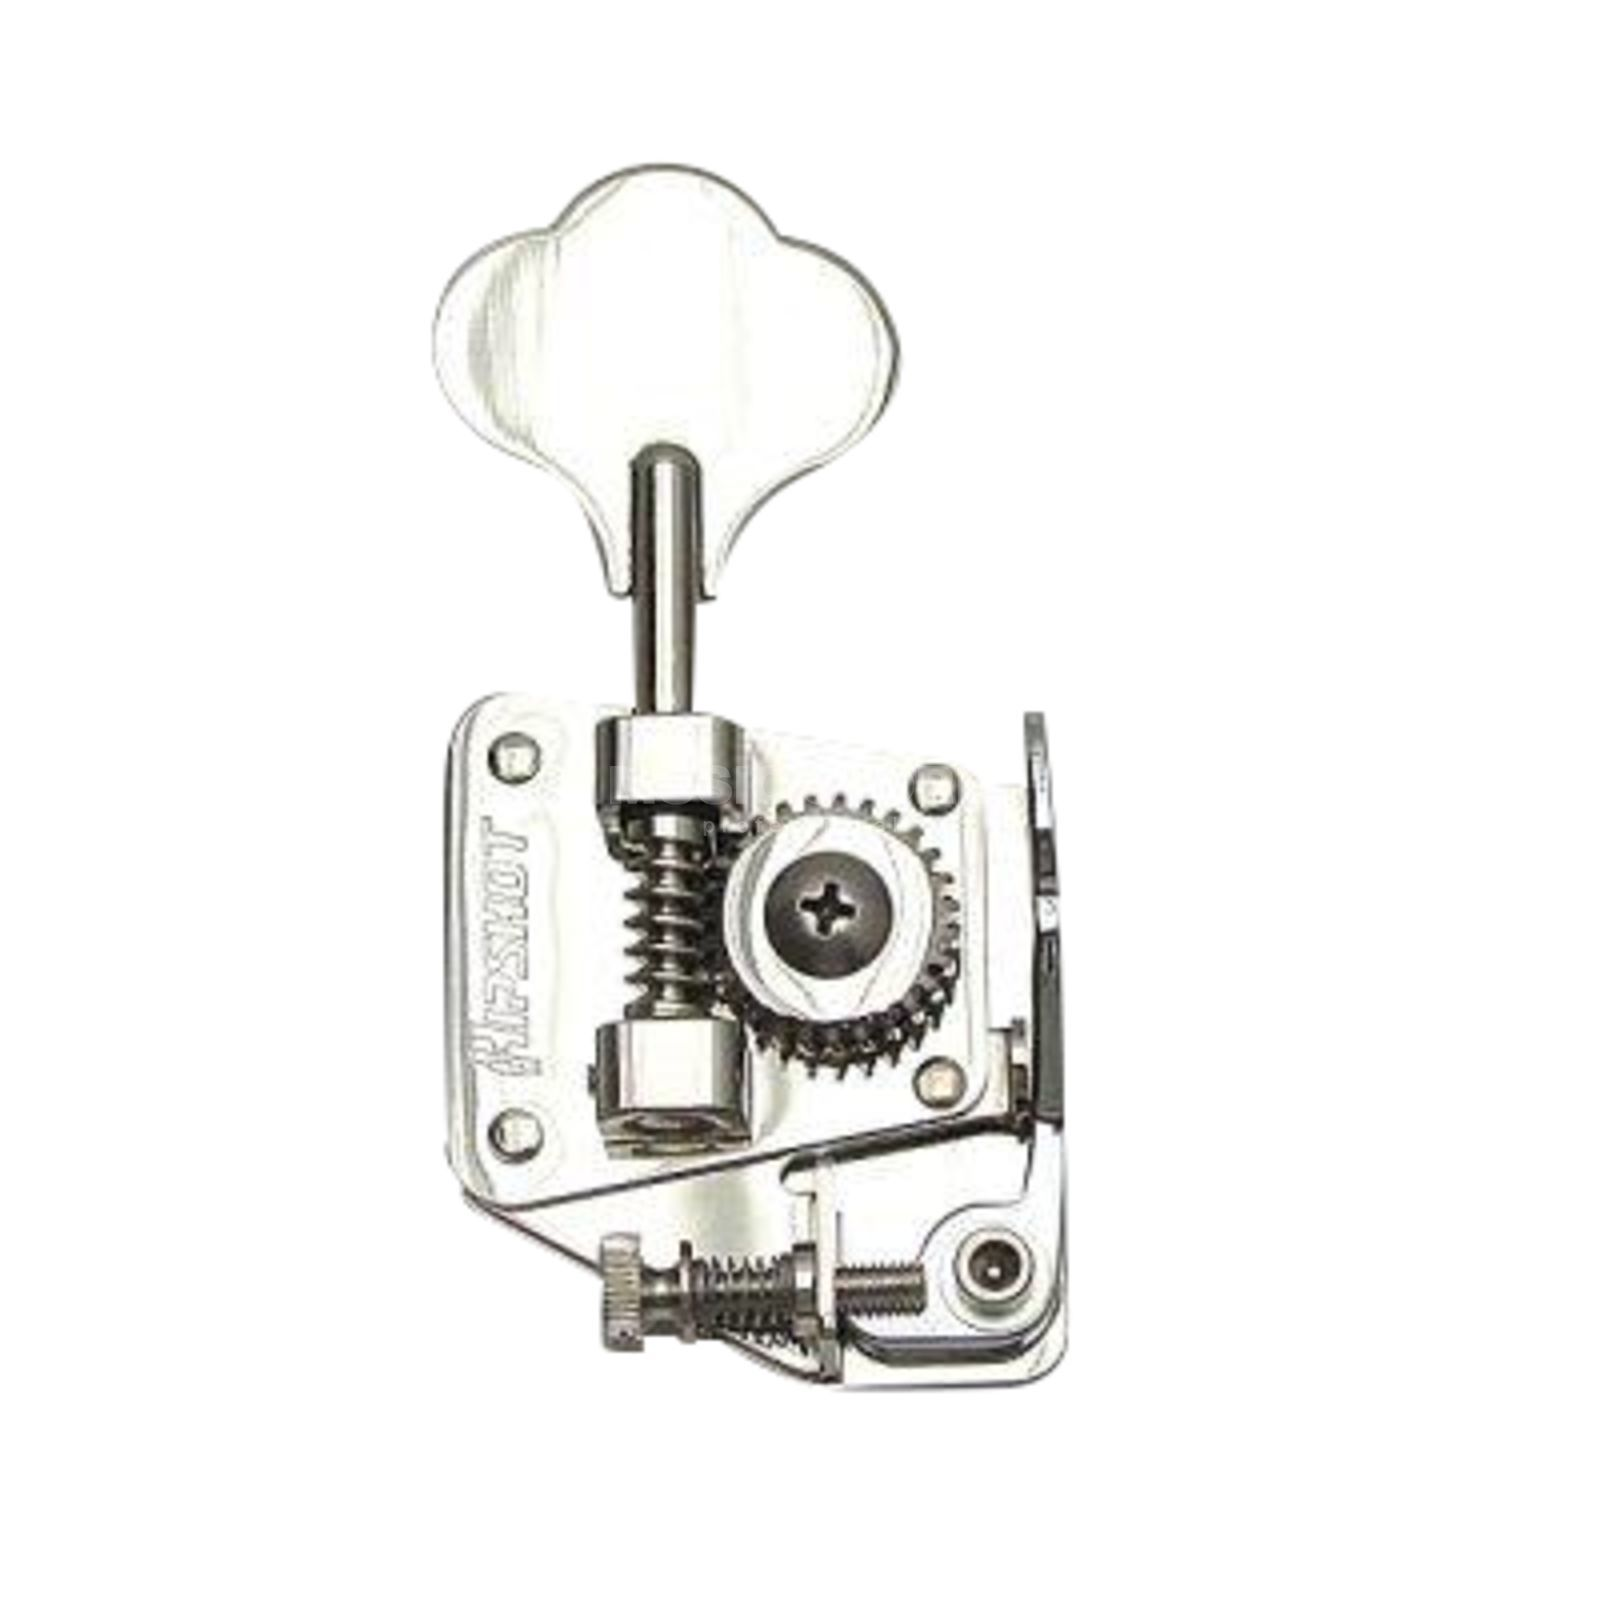 Hipshot D'Tuner Extender Key BT2 Chrome Product Image